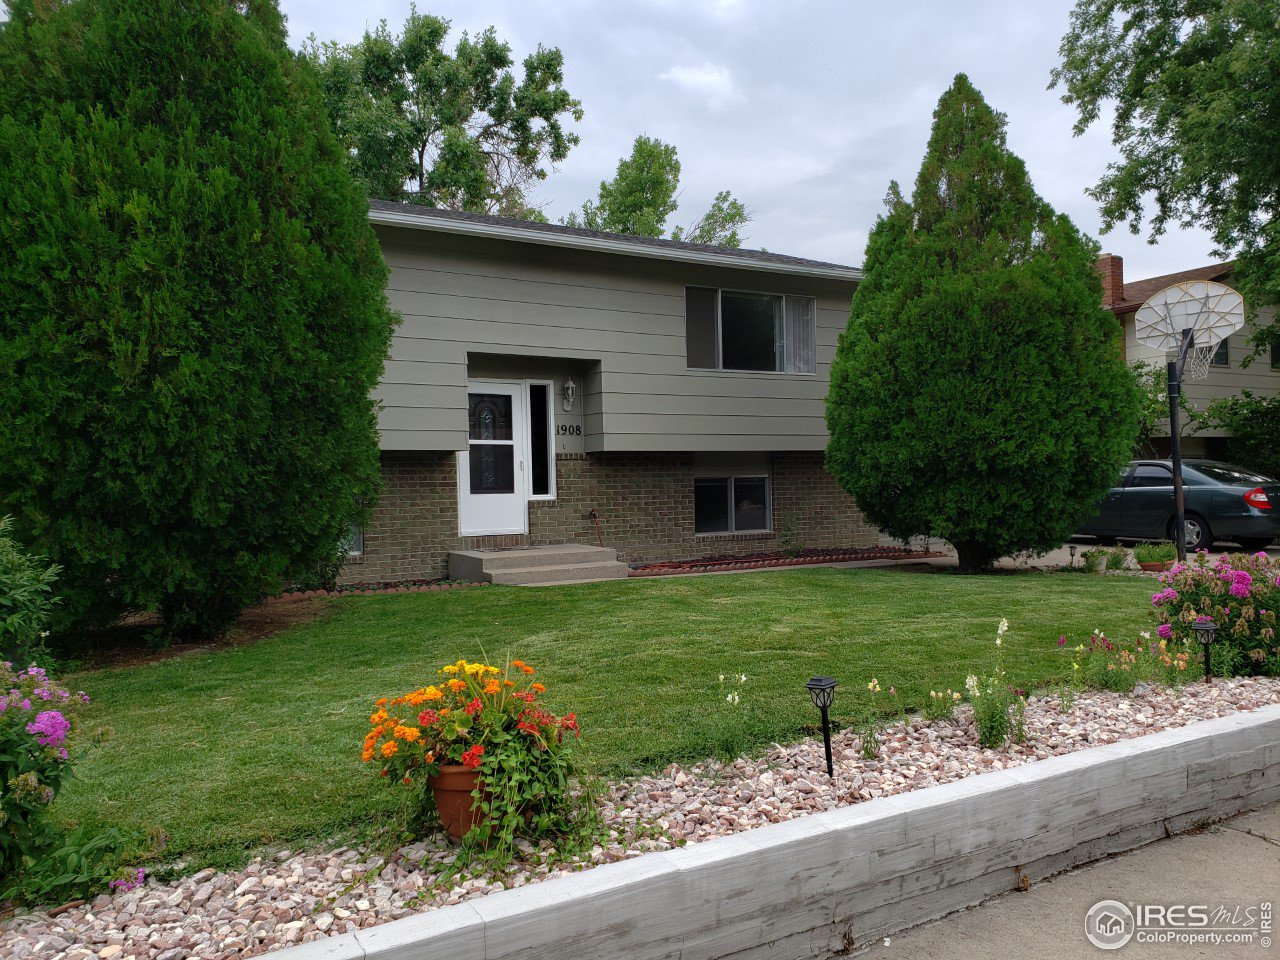 1908 31st St, Greeley CO 80631